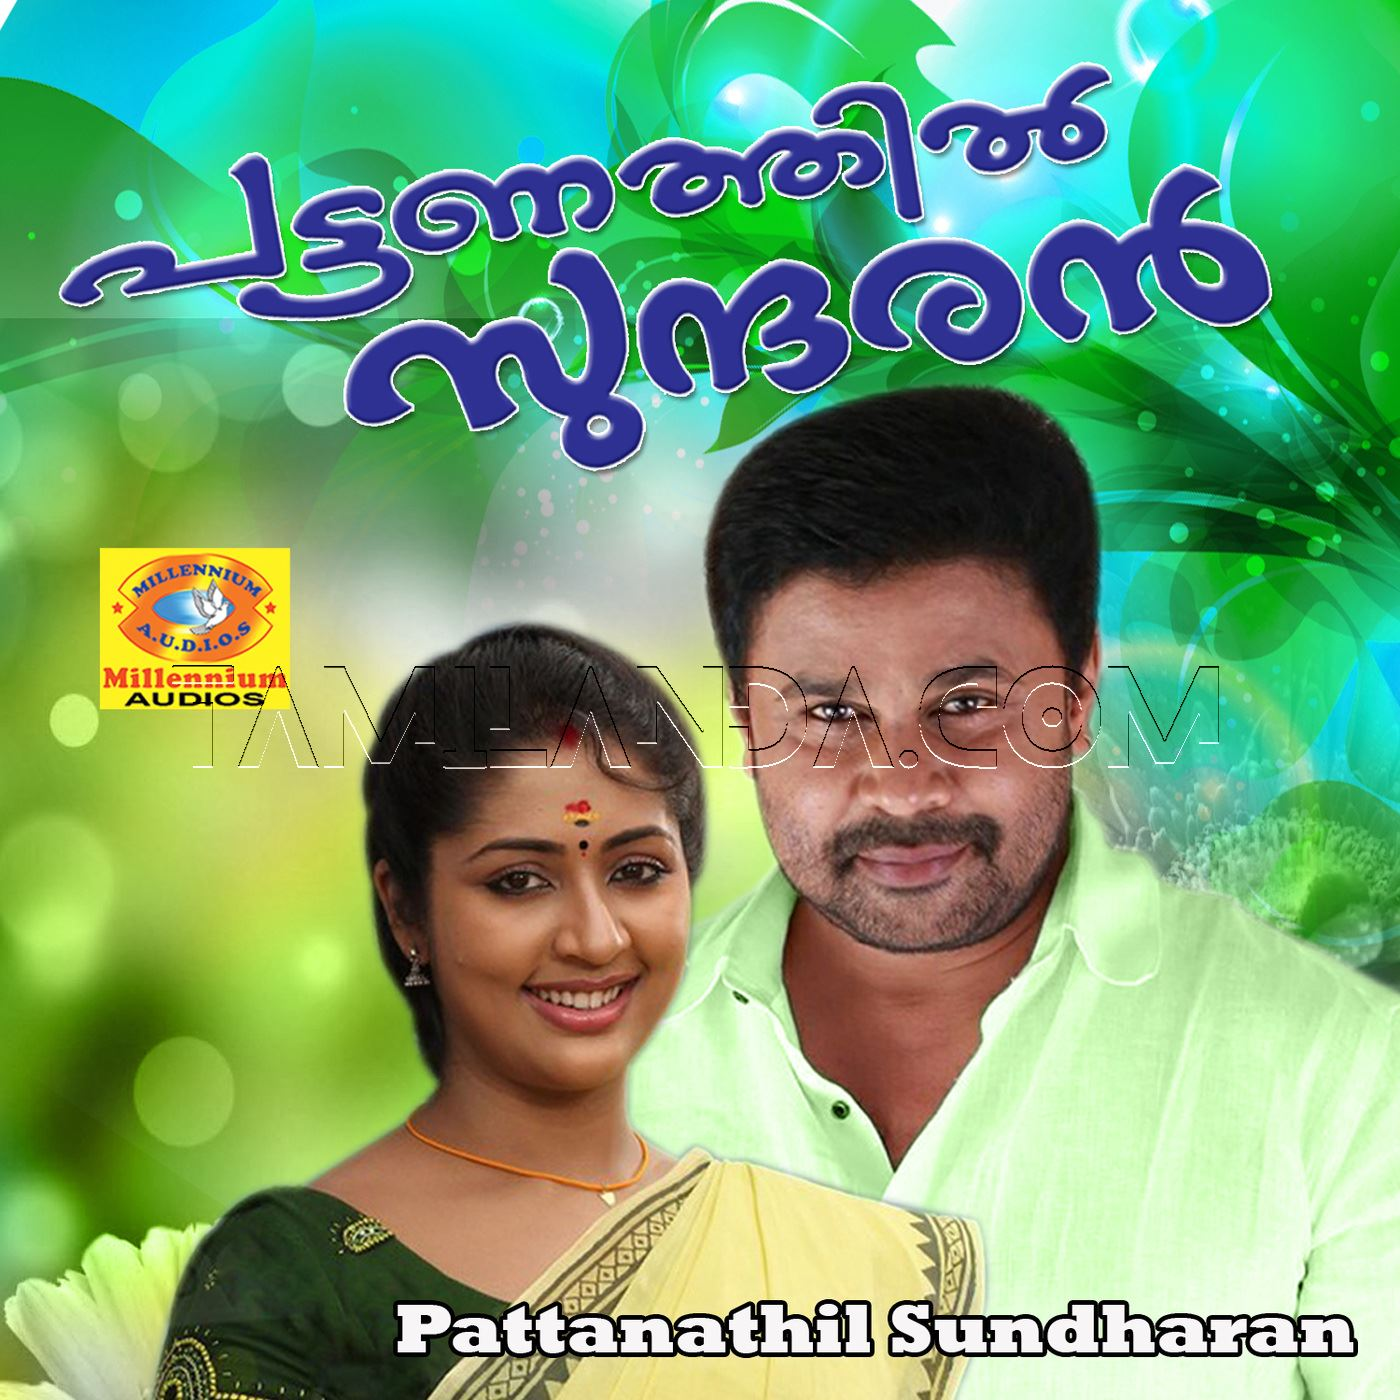 Pattanathil Sundharan FLAC Songs (2004)